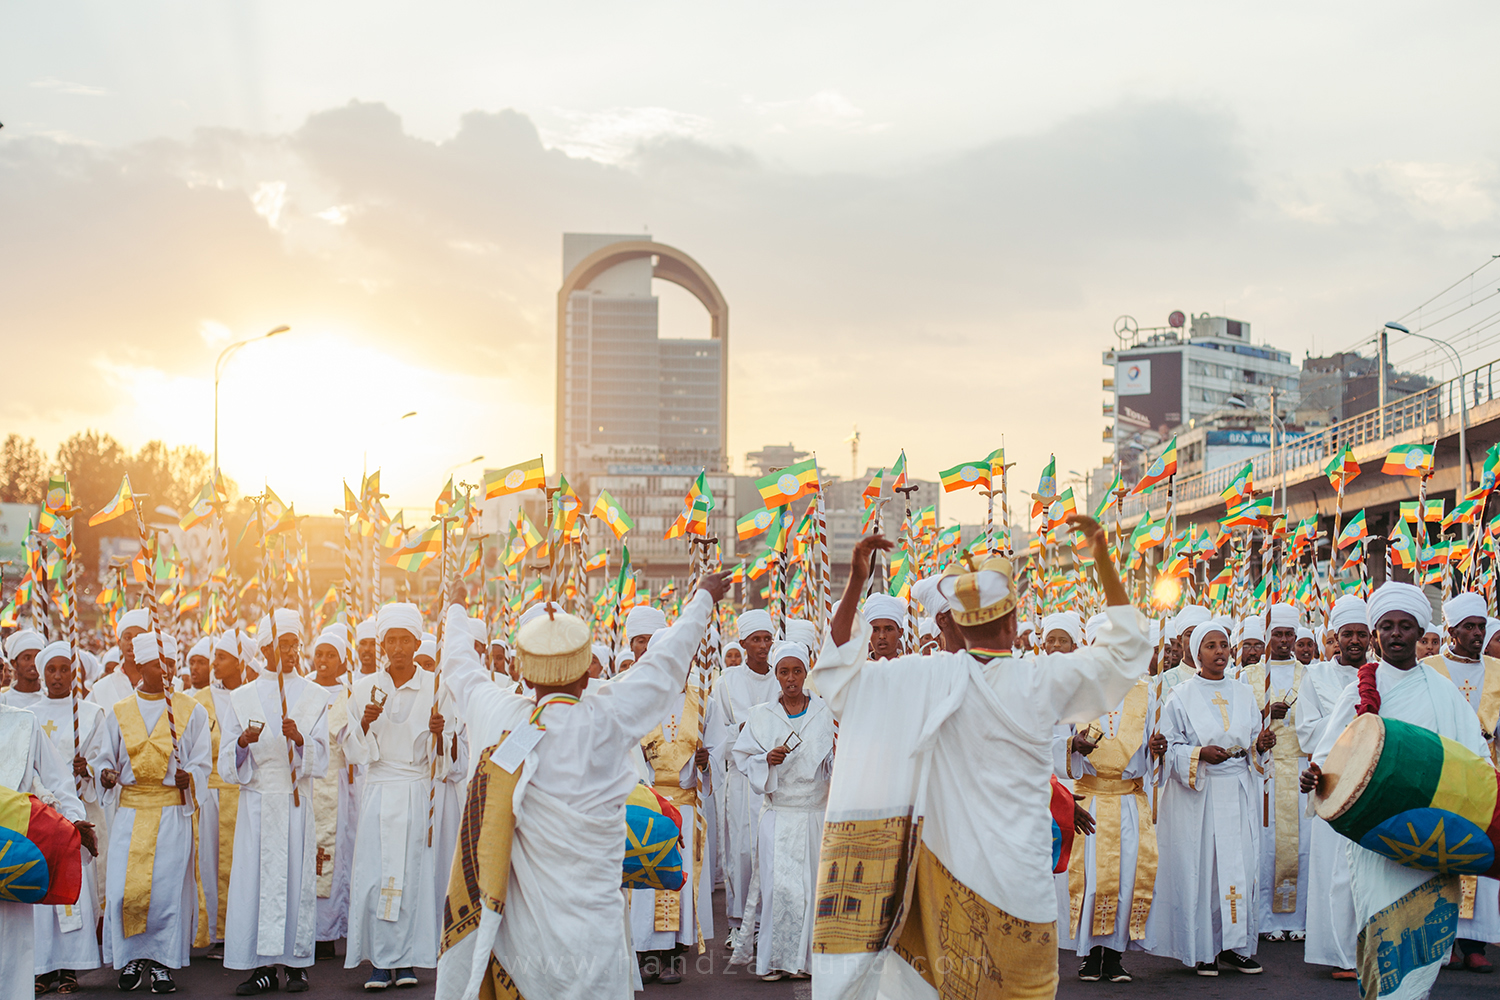 Meskel Festival in the heart of Addis